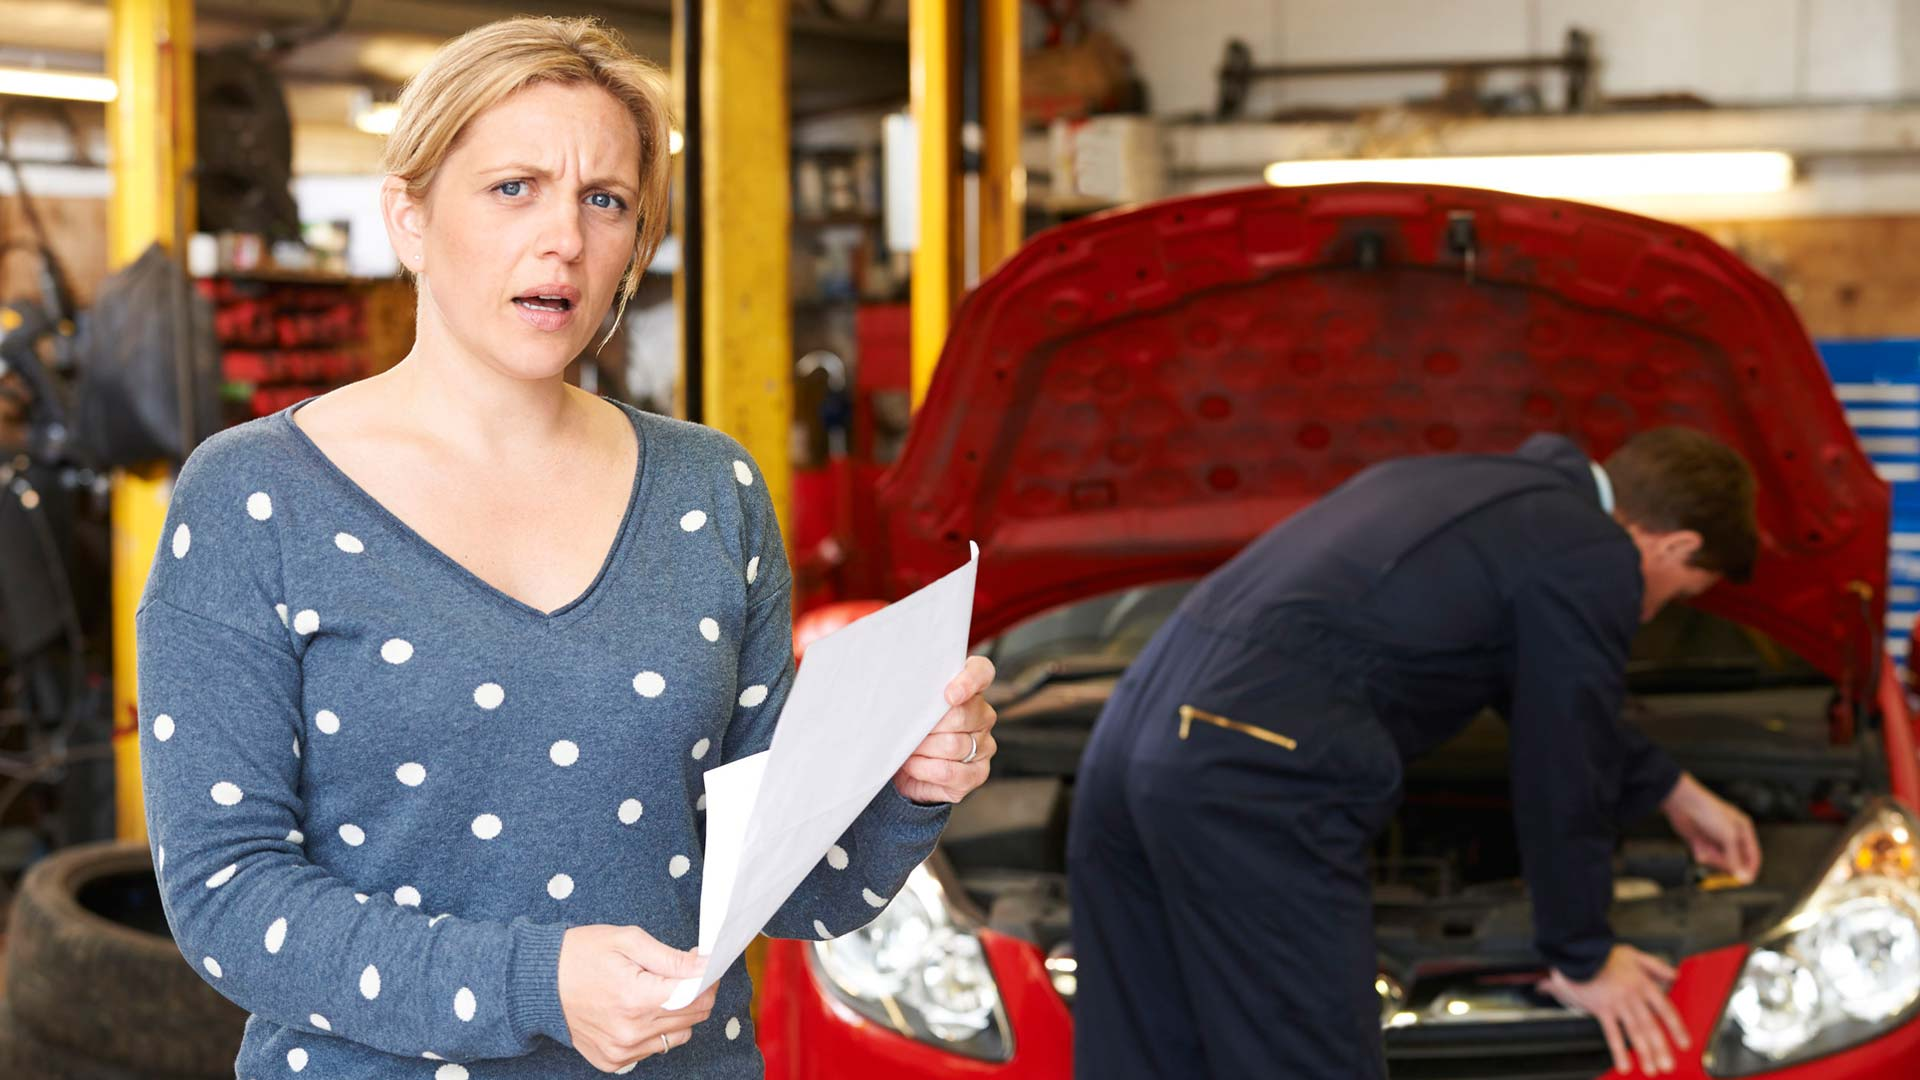 4 Most Dangerous Used Car Buying Mistakes